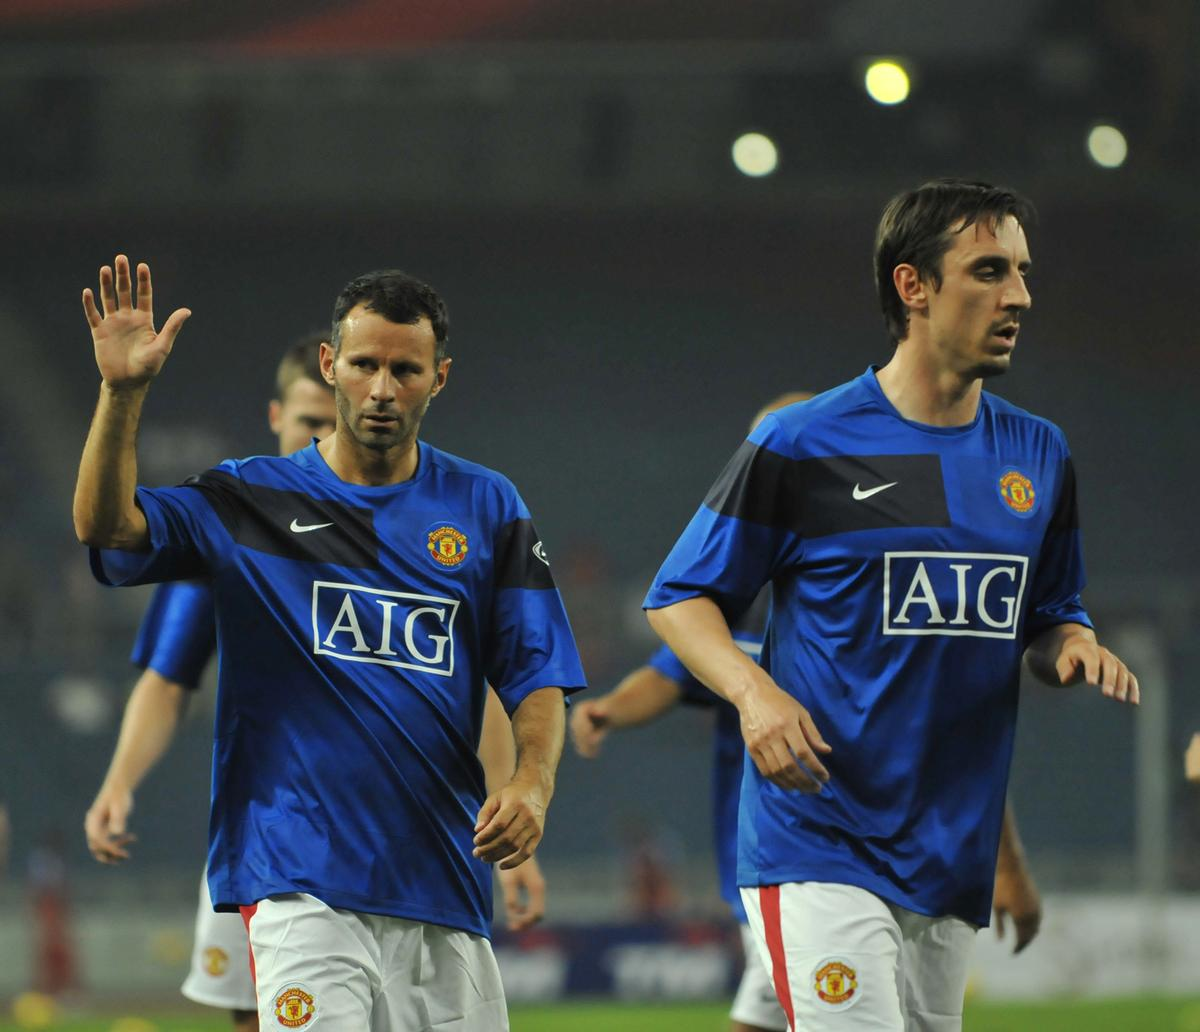 Ryan Giggs and Gary Neville have moved into the world of development following their retirement from playing football / Ahmad Faizal Yahya